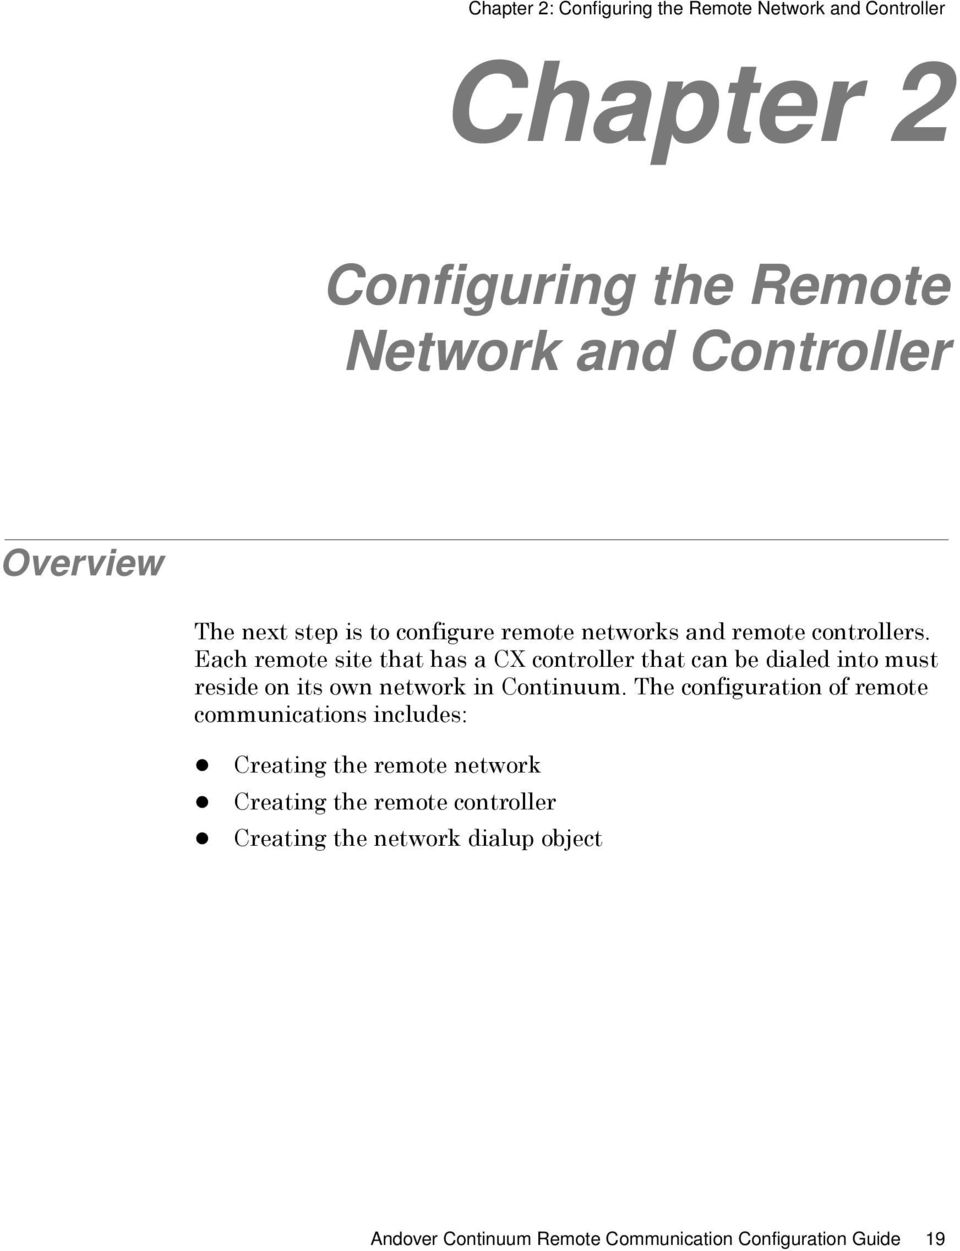 Each remote site that has a CX controller that can be dialed into must reside on its own network in Continuum.